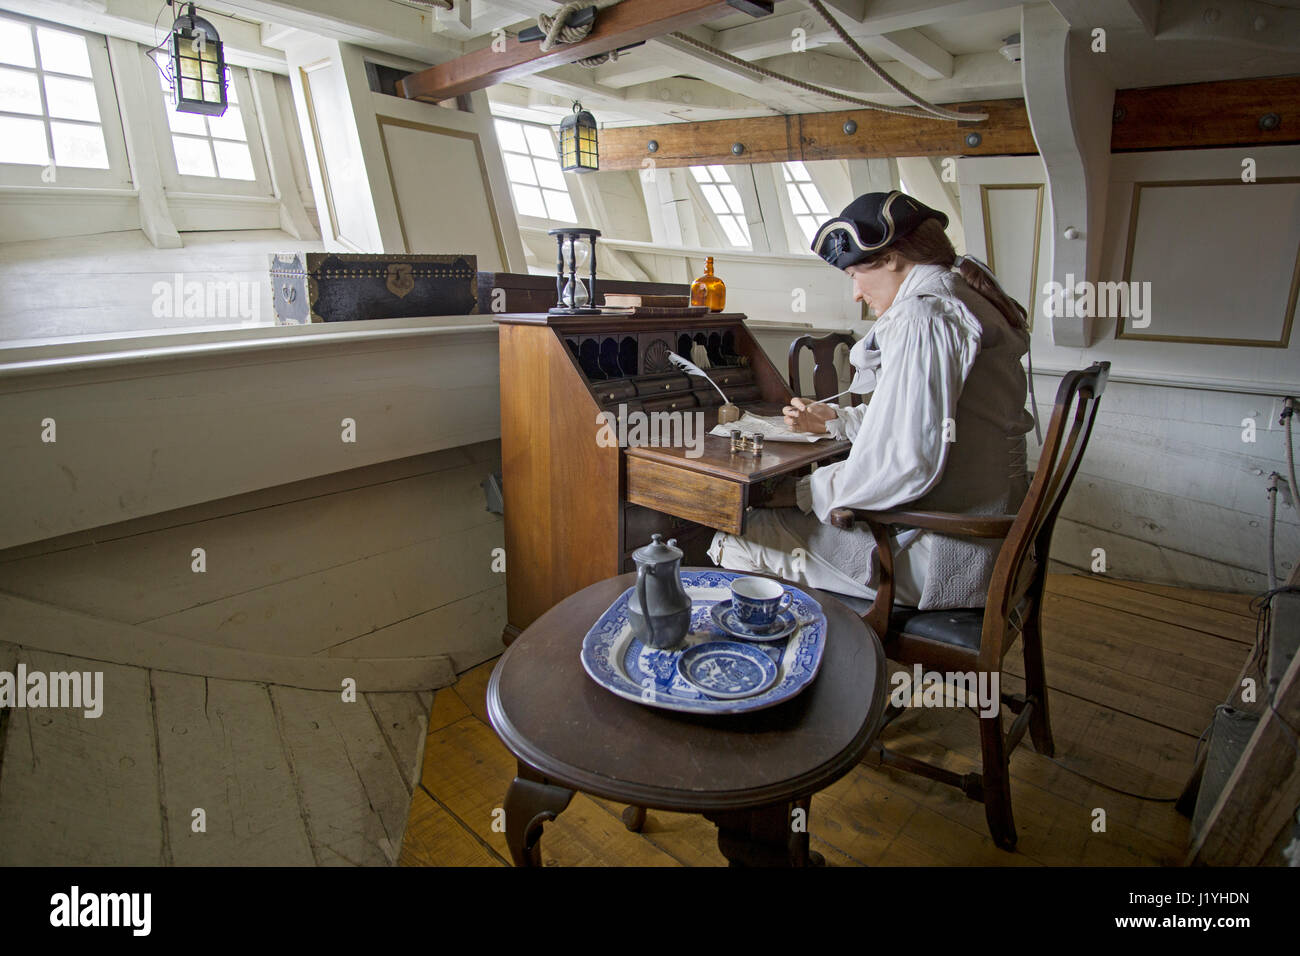 boston tea party historical stock photos u0026 boston tea party